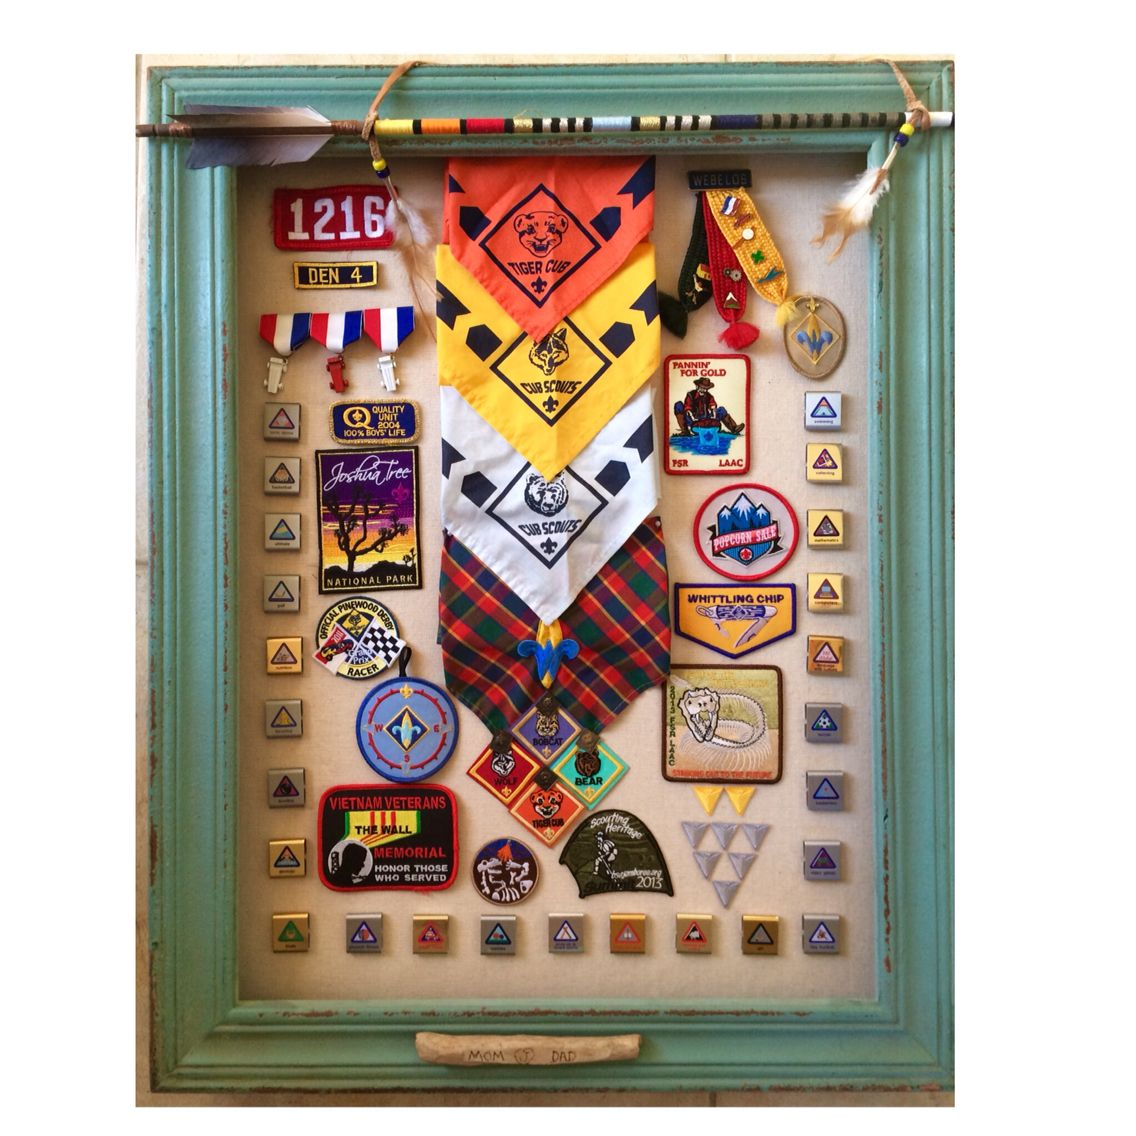 Cub Scout shadow box | Cub Scouts | Pinterest